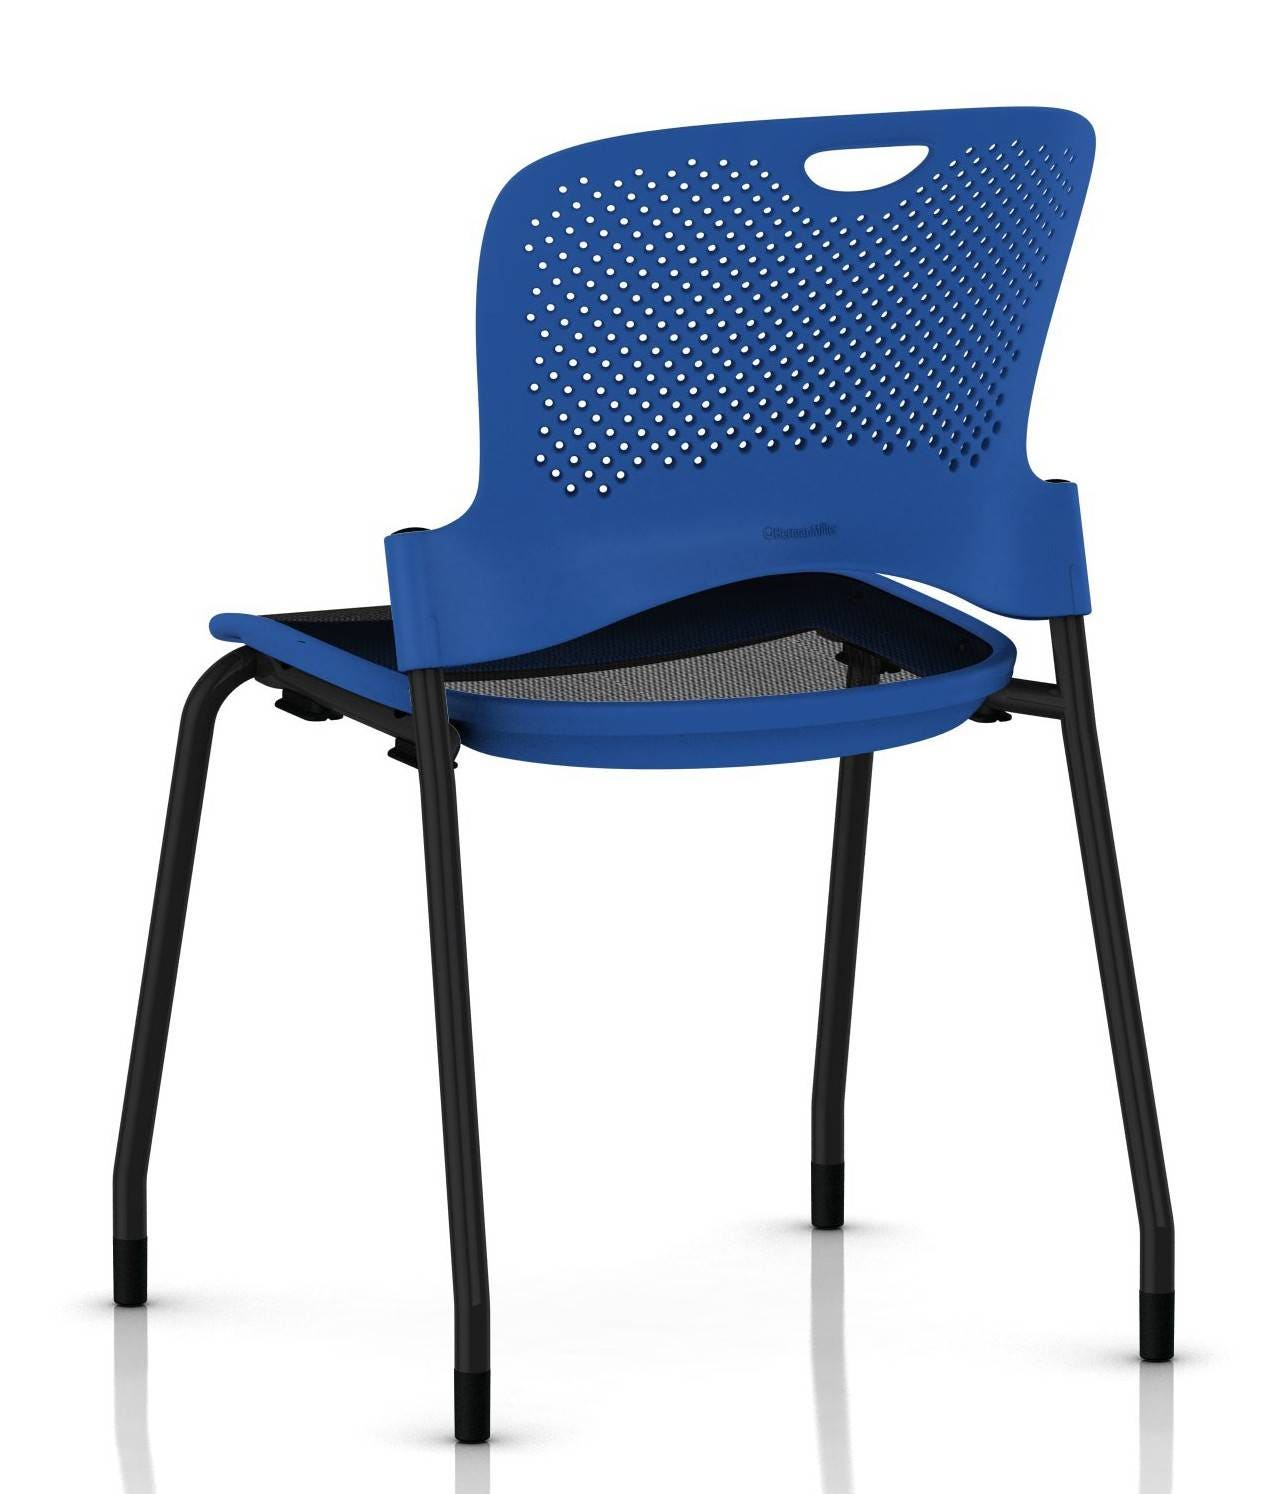 Caper Chair Chairs Model